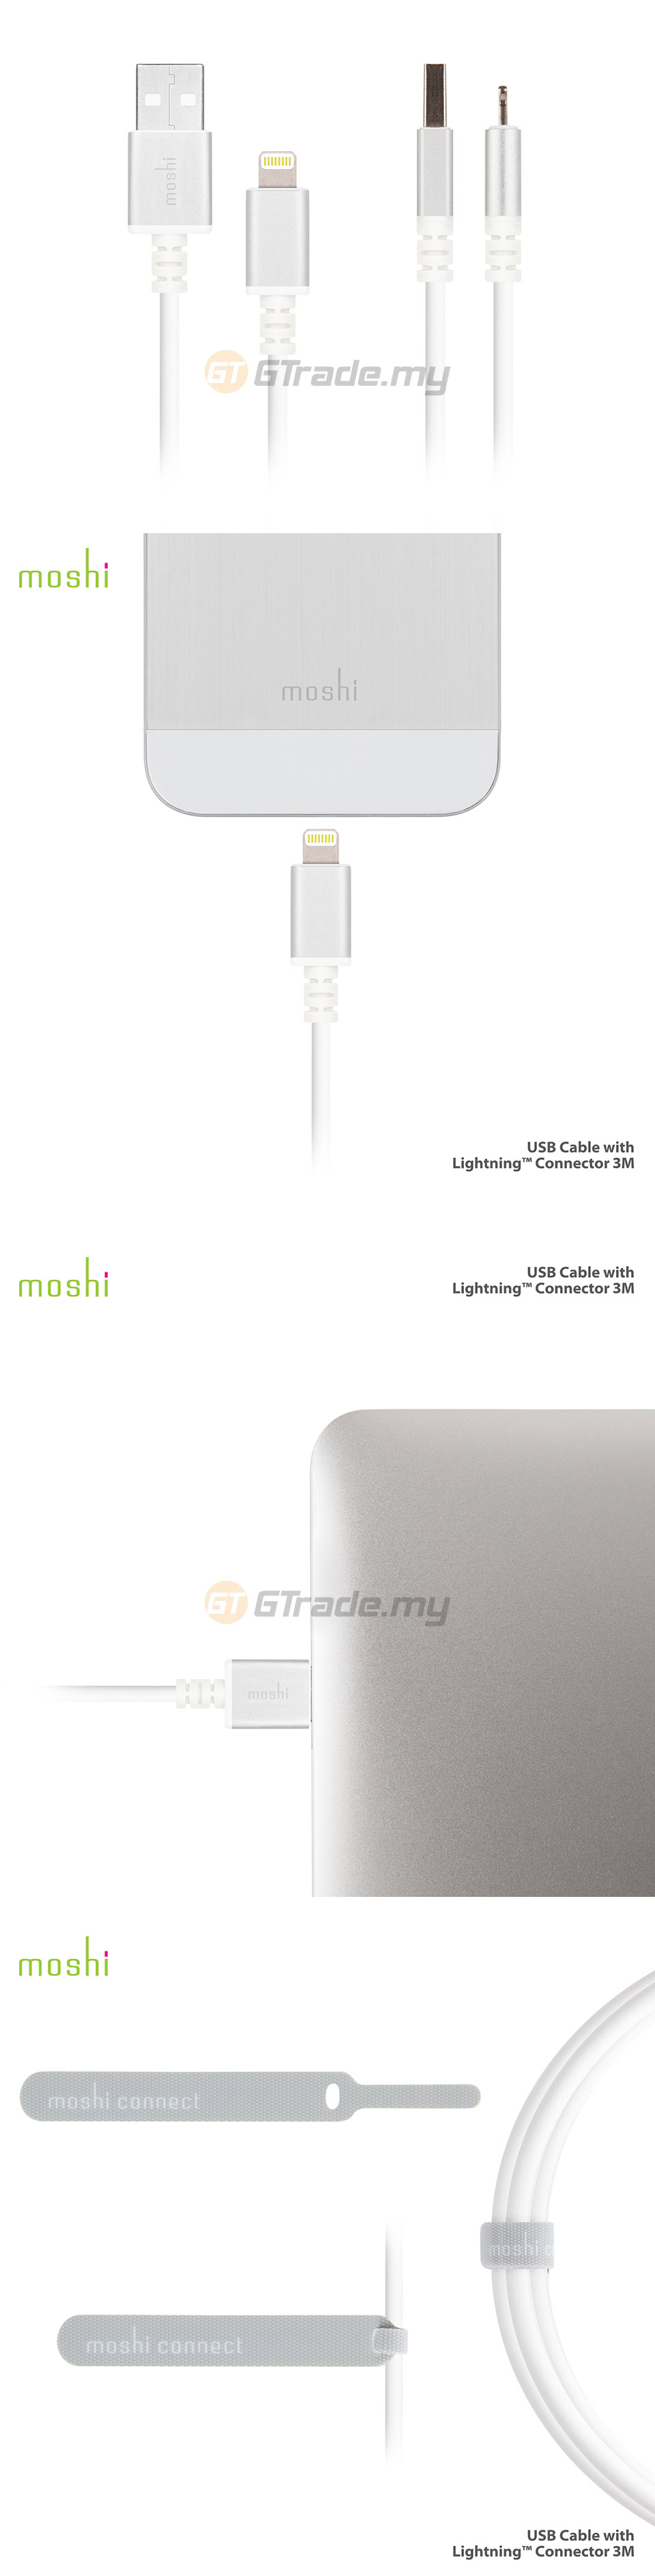 moshi-sync-charger-lightning-usb-cable-3m-6ft-apple-iphon-ipad-ipod-p